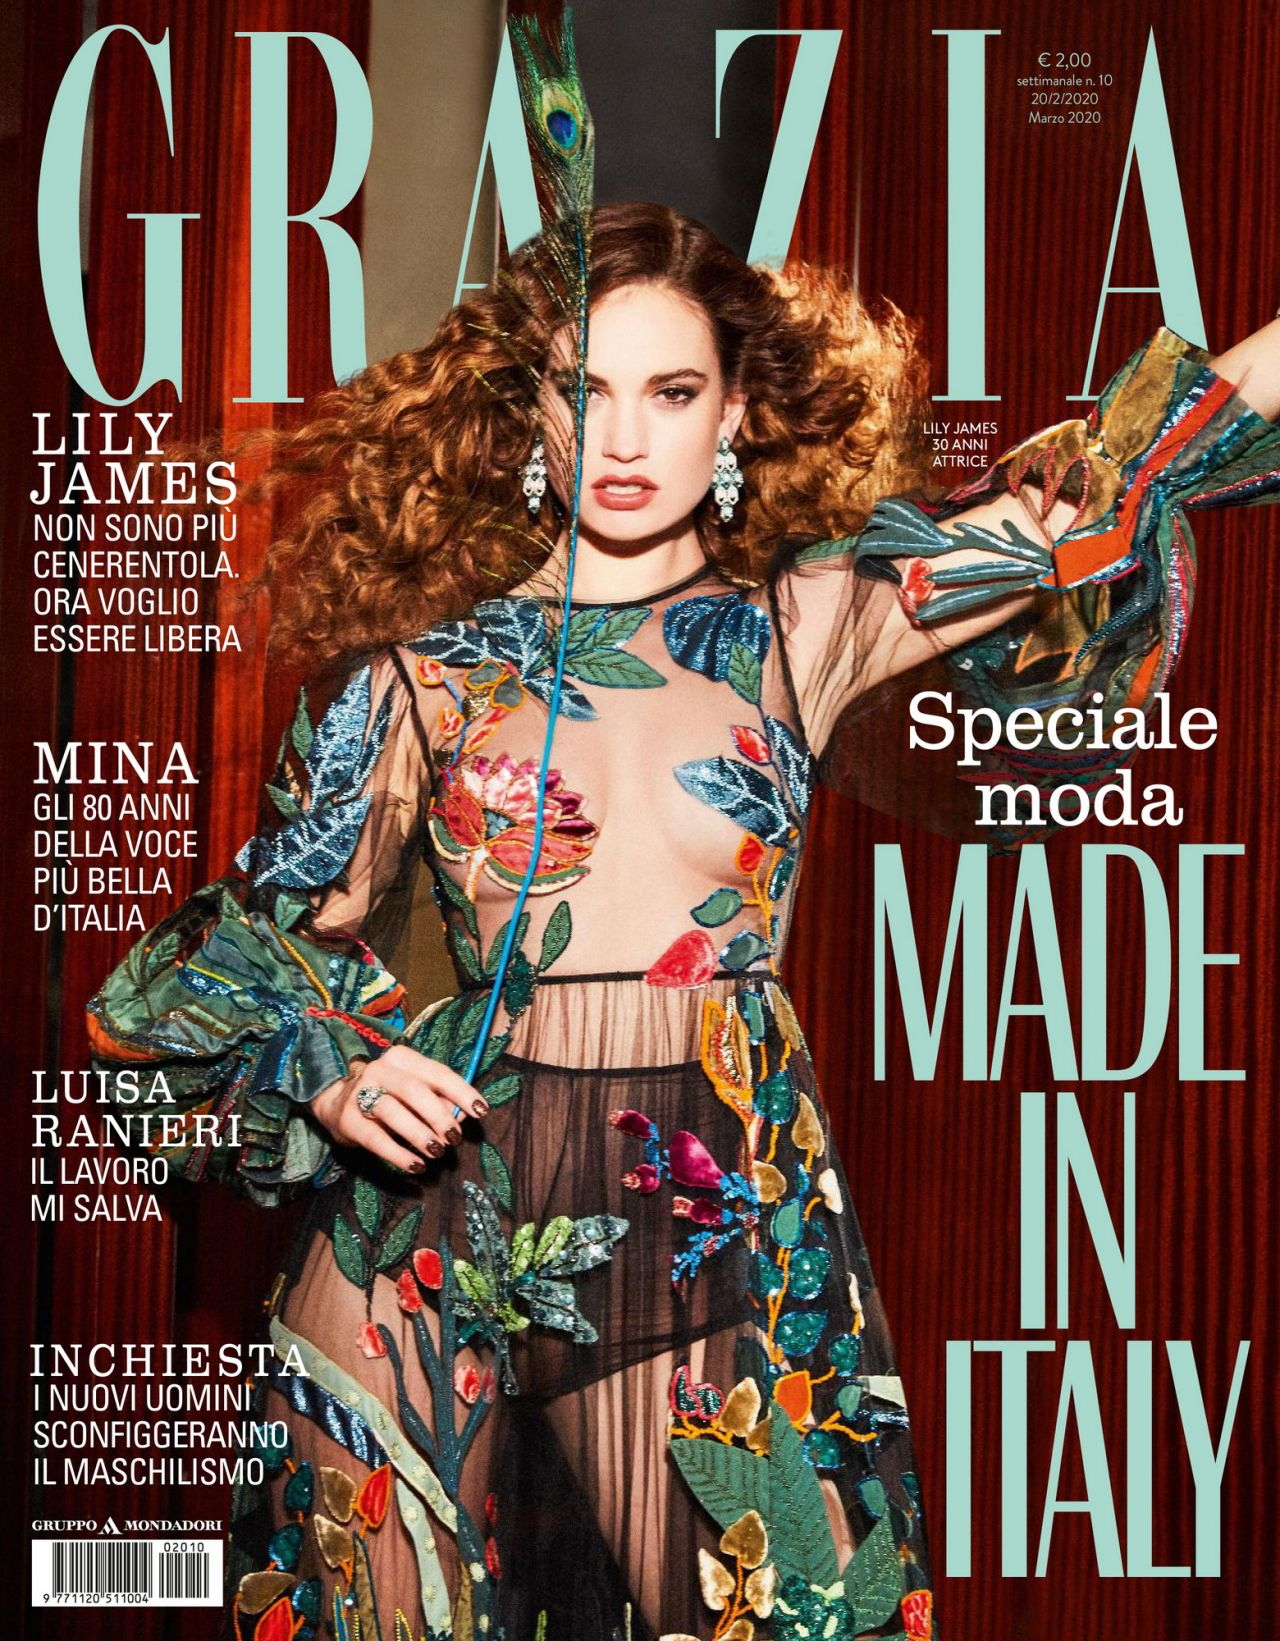 0222174641608_00_137567107_lily-james-grazia-italy-march-2020-1.jpg